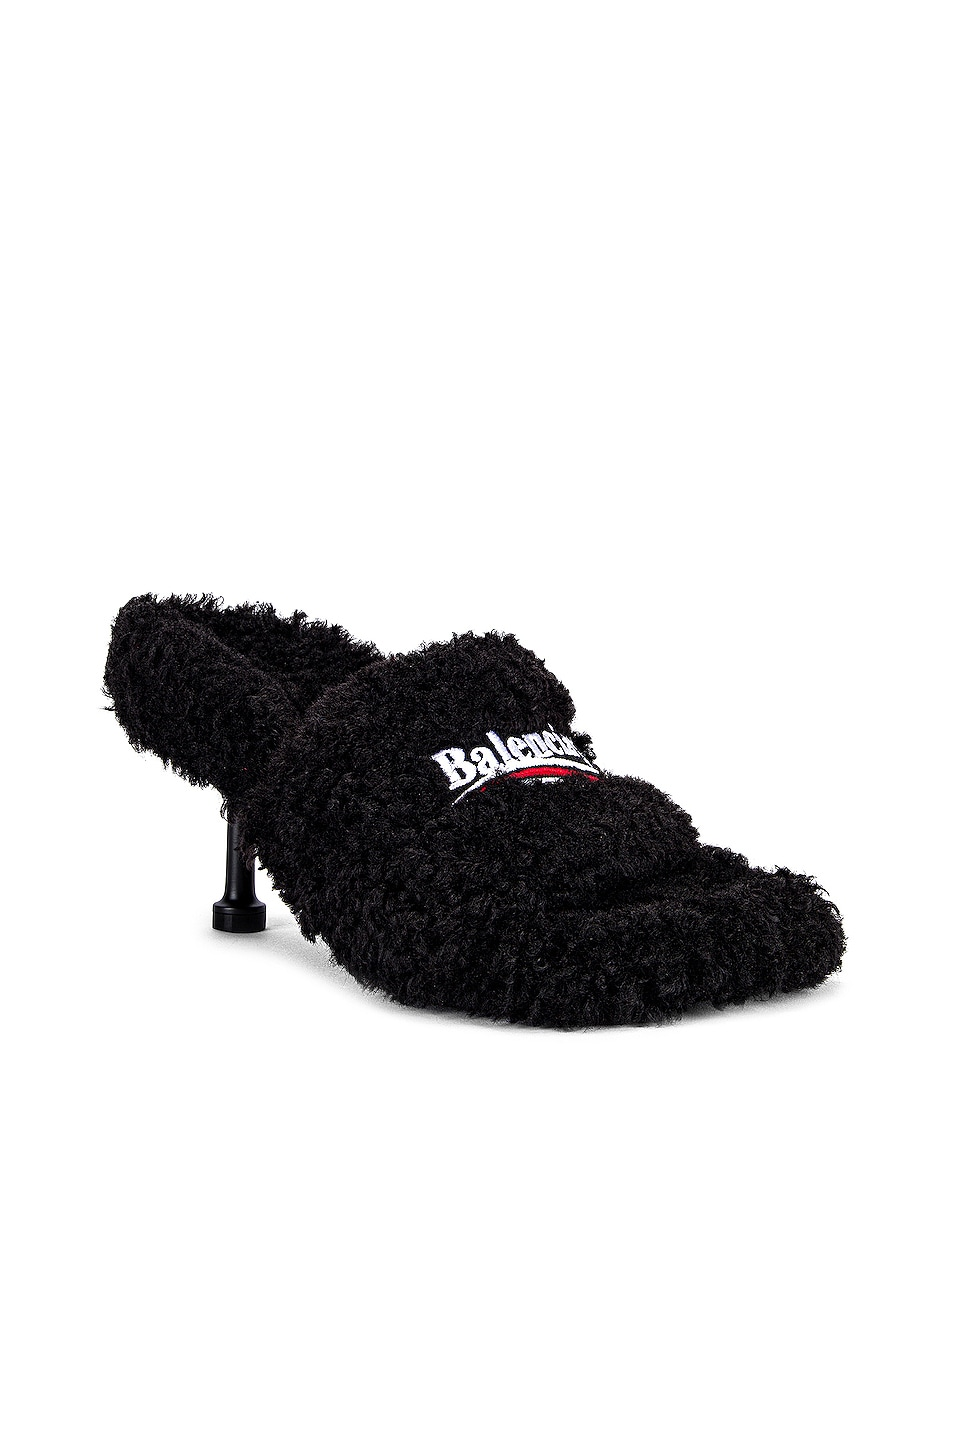 Image 1 of Balenciaga Furry Sandals in Black & White & Red